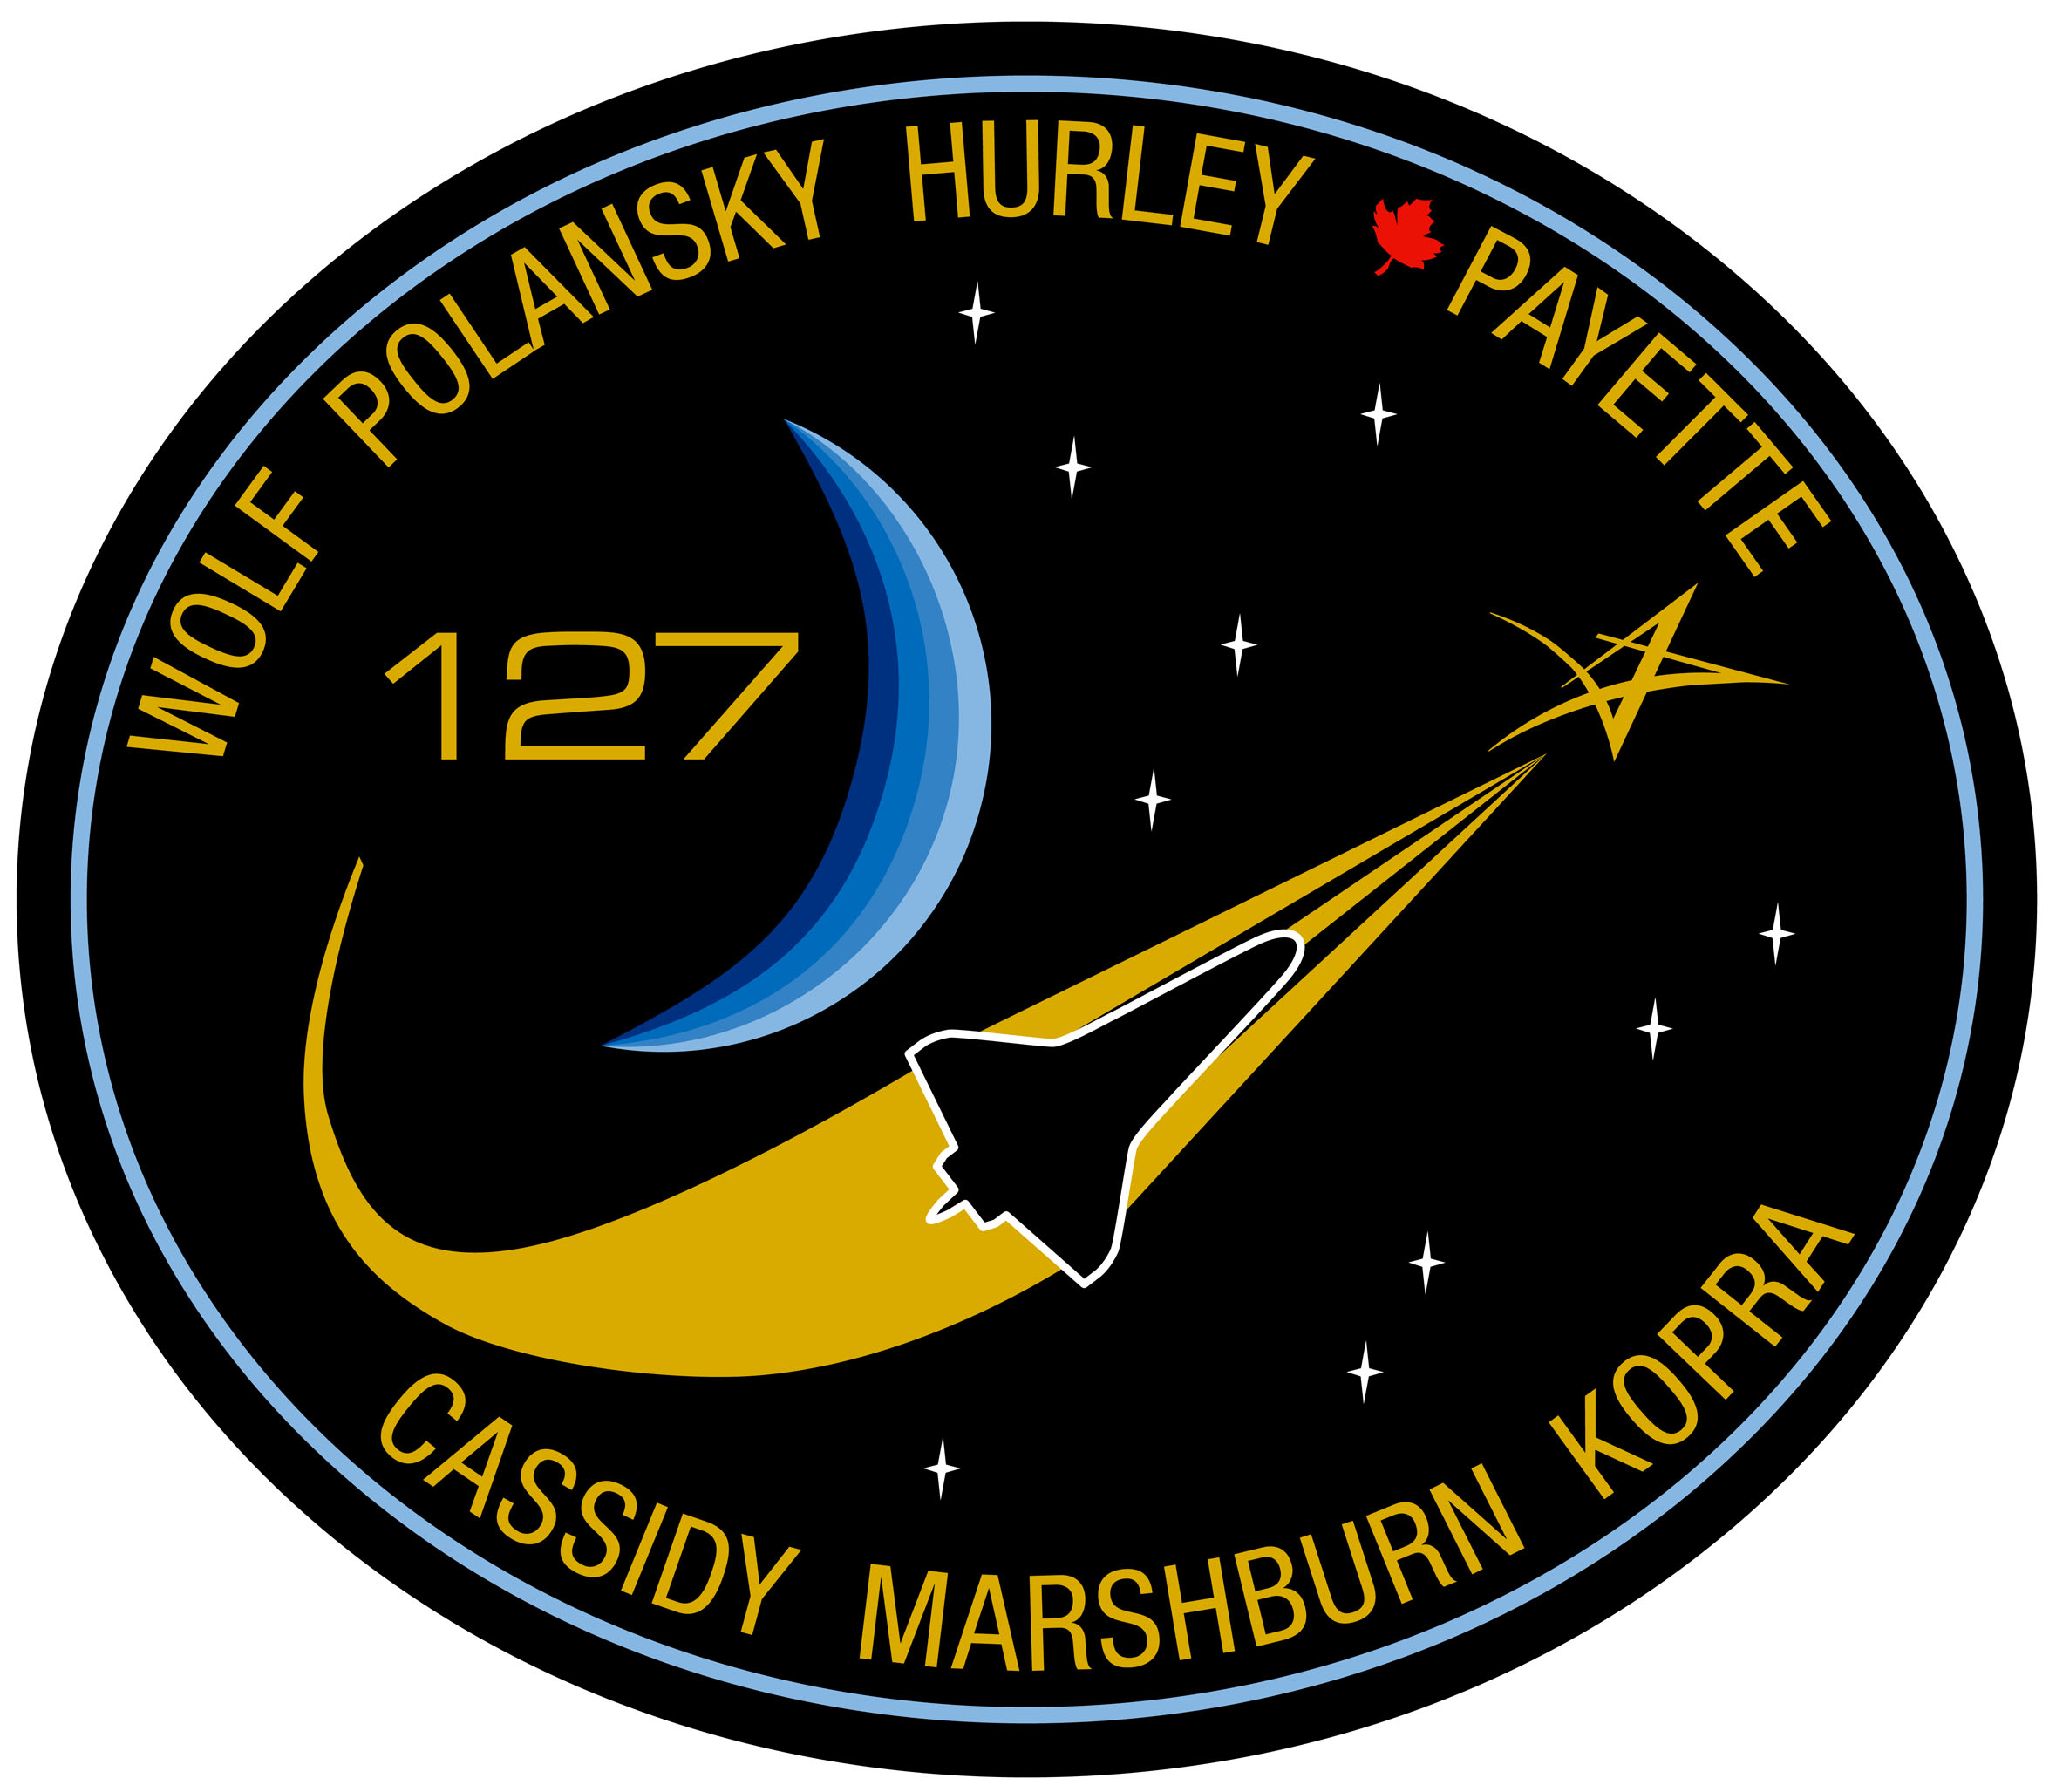 http://upload.wikimedia.org/wikipedia/commons/e/ef/STS-127_insignia.jpg